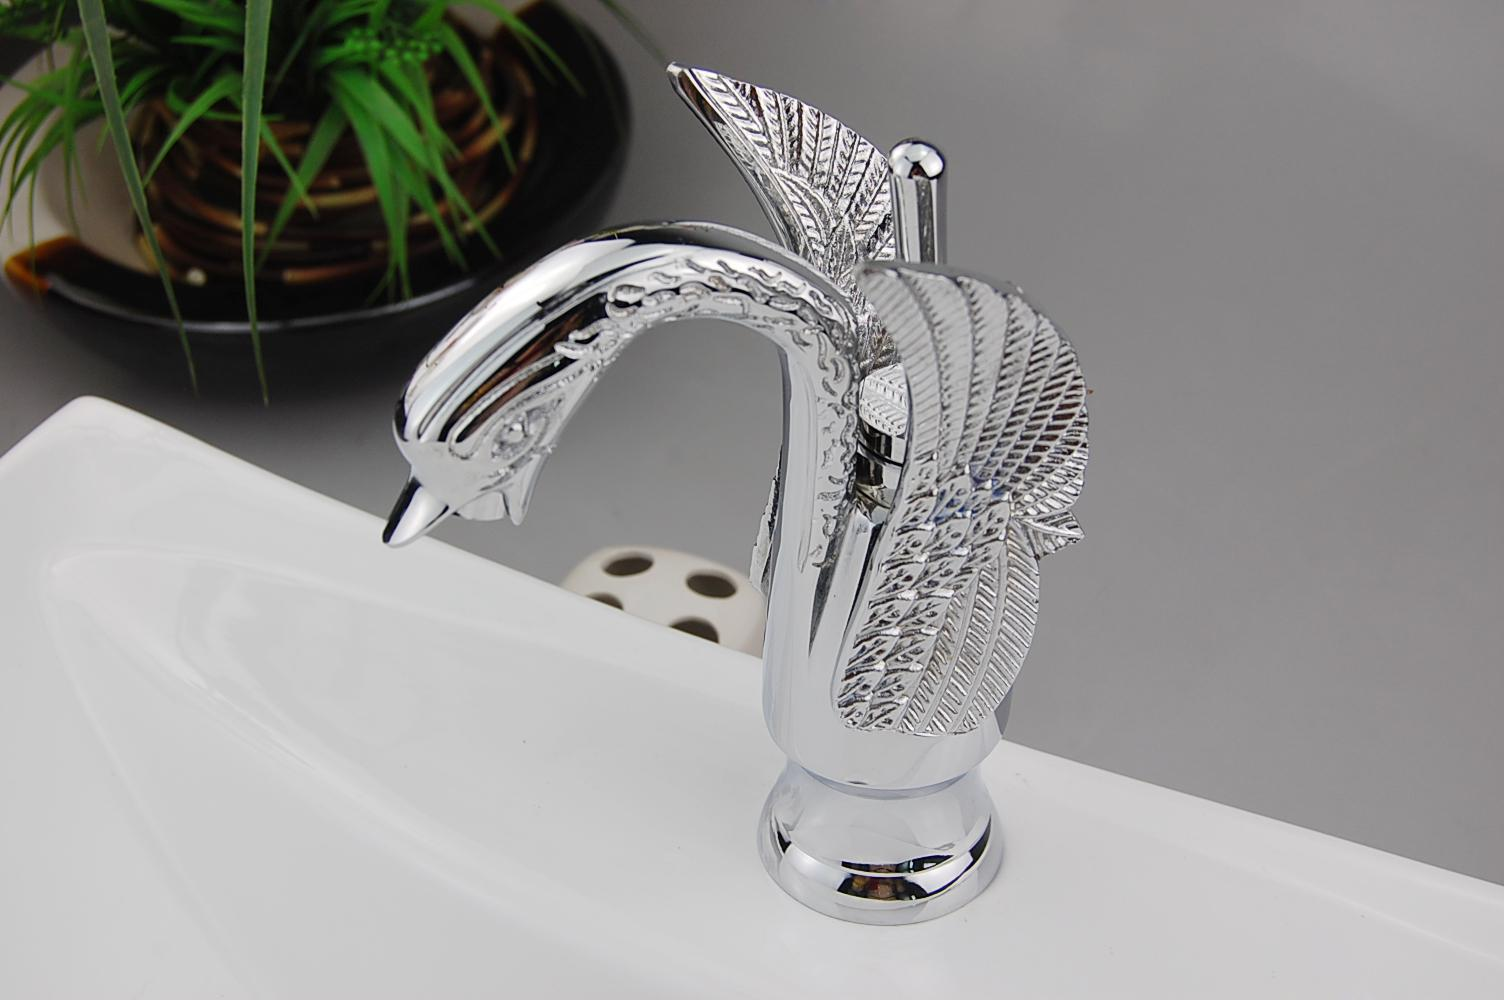 Attirant Classic Elegant Bathroom Basin U0026 Kitchen Sink Chrome Mix Tap Faucet CW202